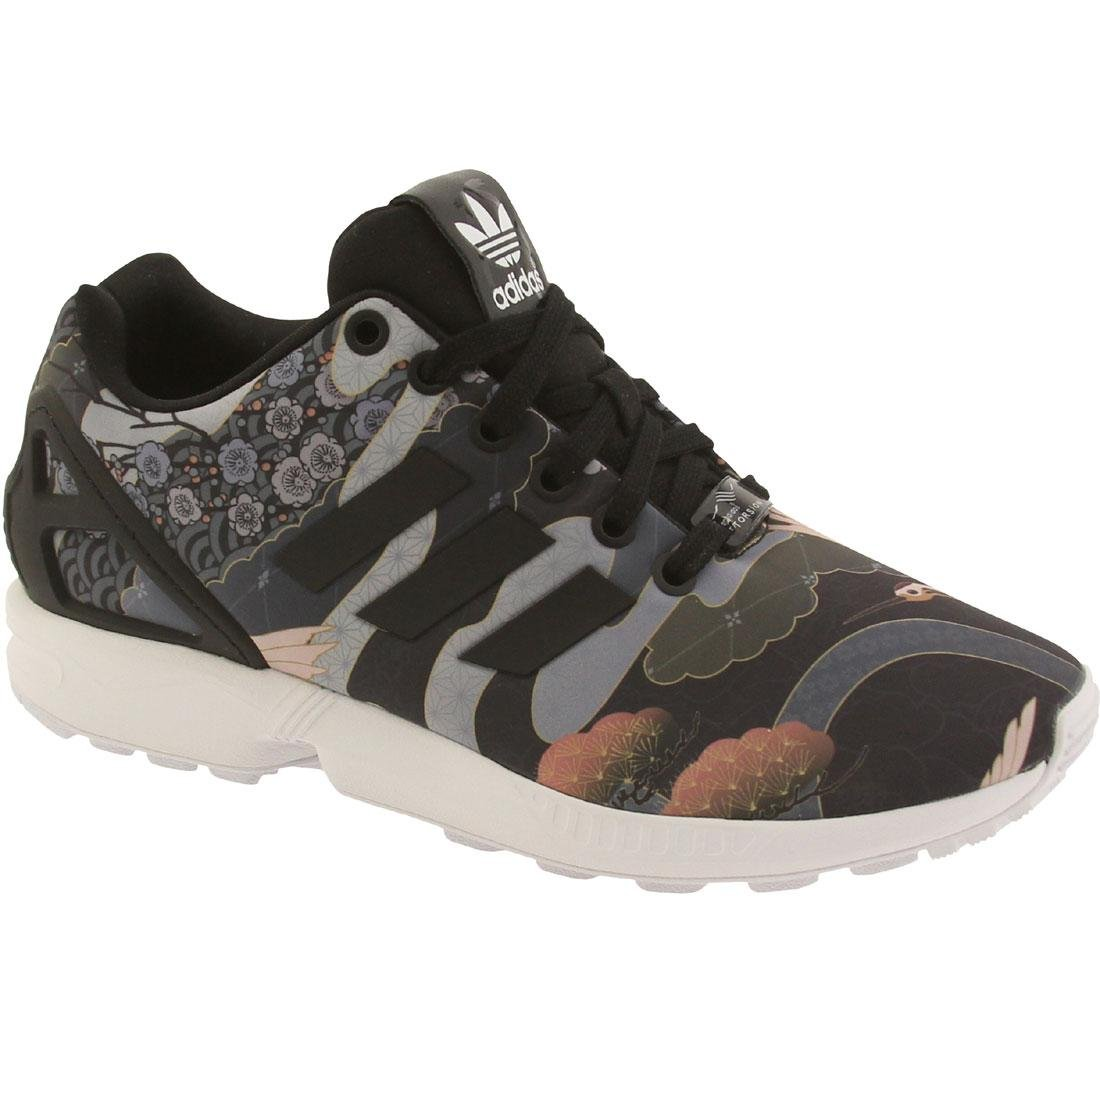 brand new 494a1 d7f75 adidas Zx Flux W Women s Casual Shoes Core Black White s75039 (10.5 B(M)  US)  Amazon.co.uk  Shoes   Bags